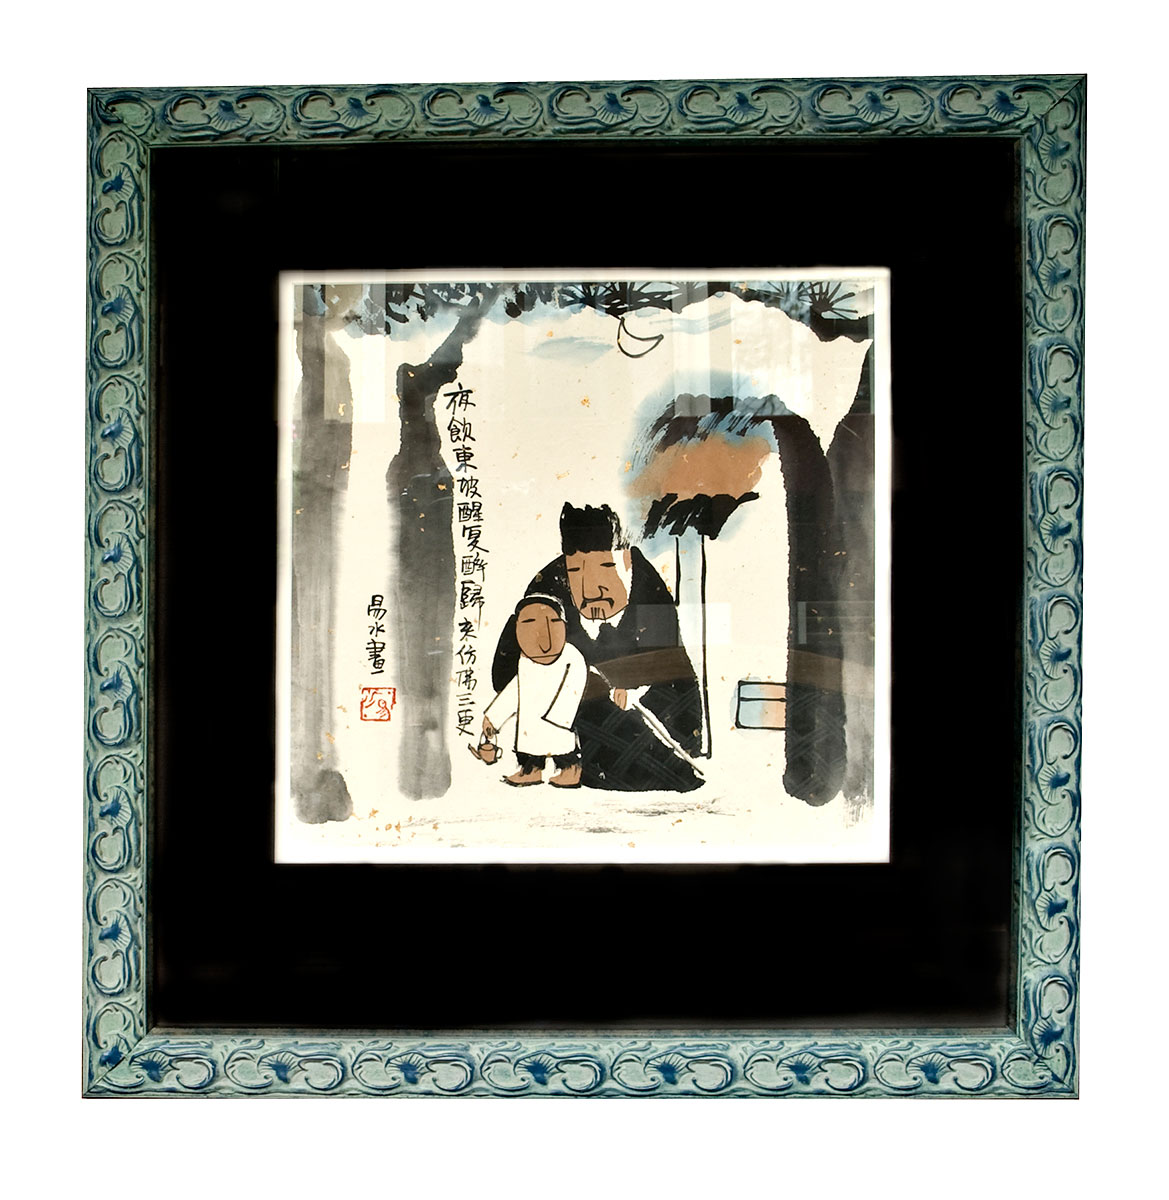 Framed Asian painting